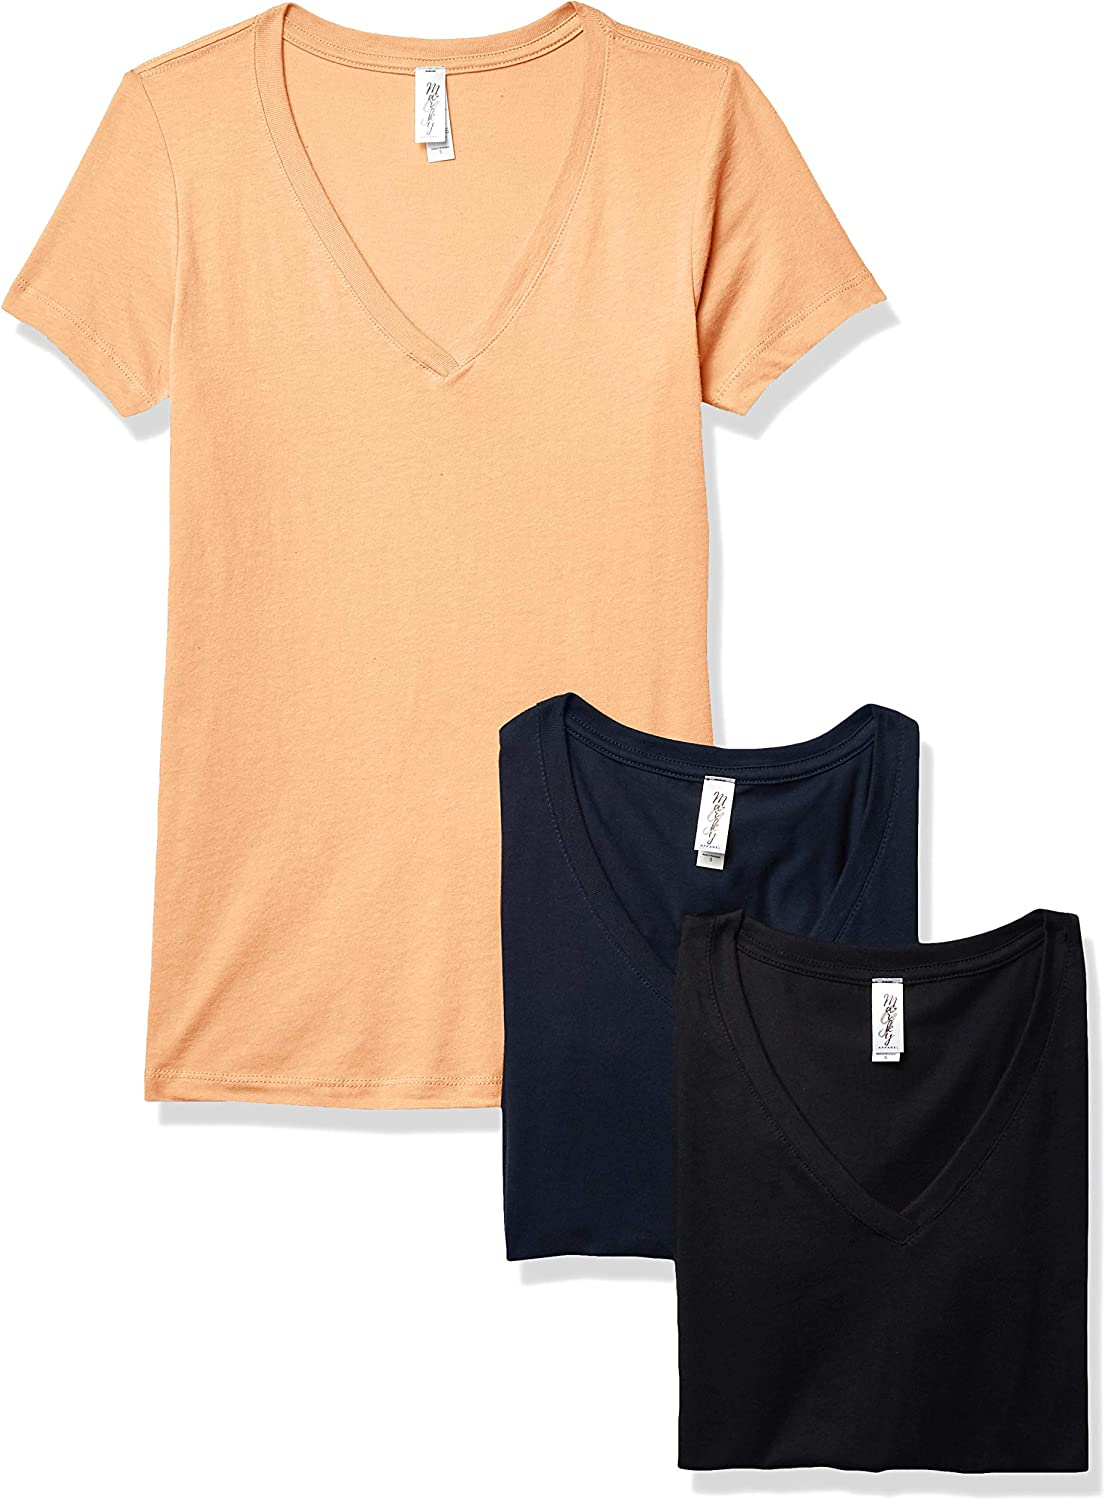 Marky G Apparel shopping Women's Ideal Short Sleeve Tees V-Neck T-Shirt Our shop OFFers the best service